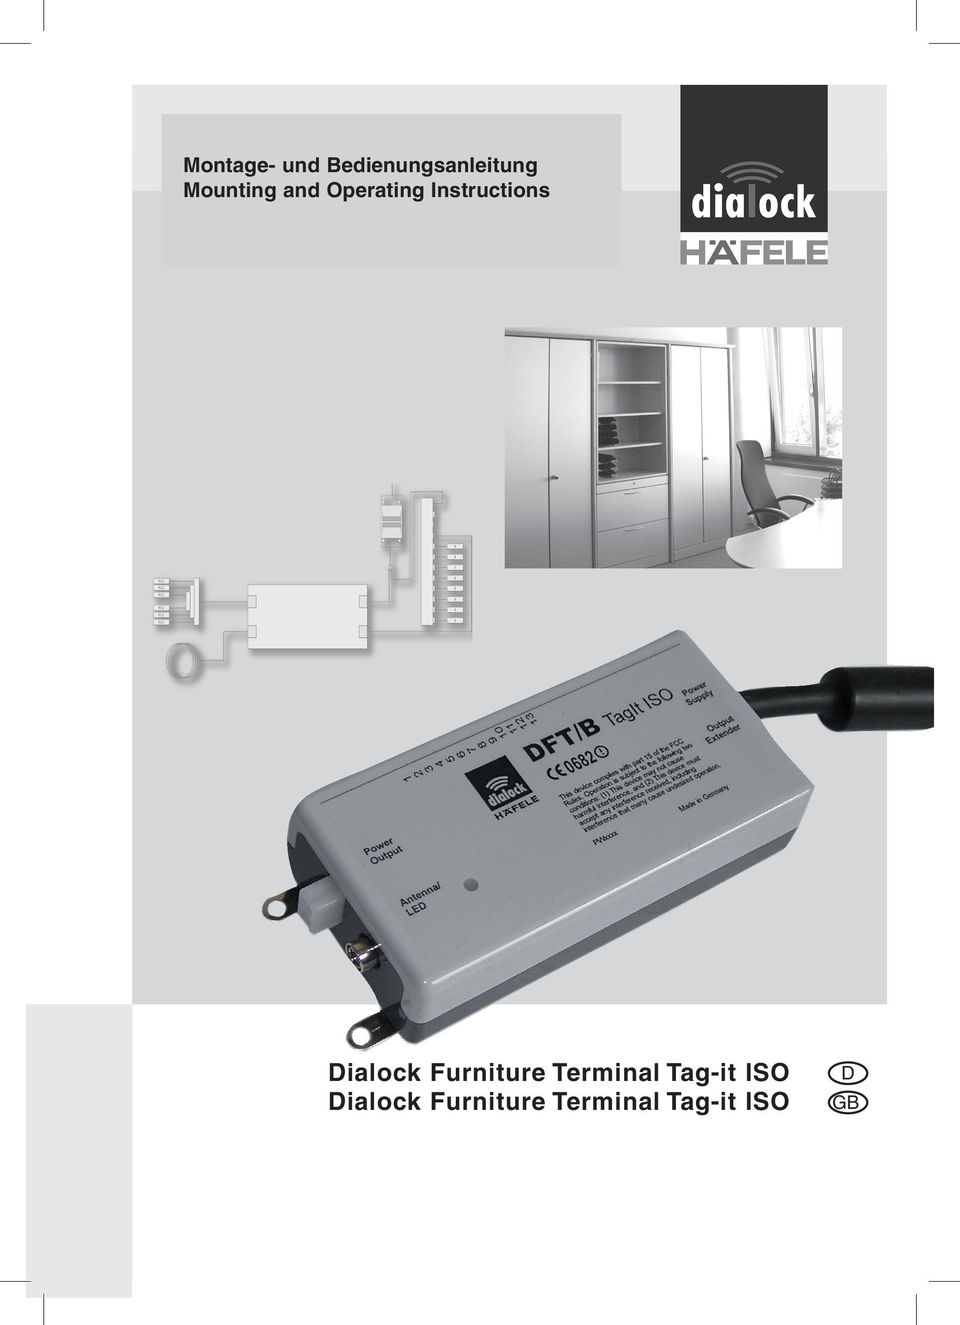 Dialock Furniture Terminal Tag-it ISO